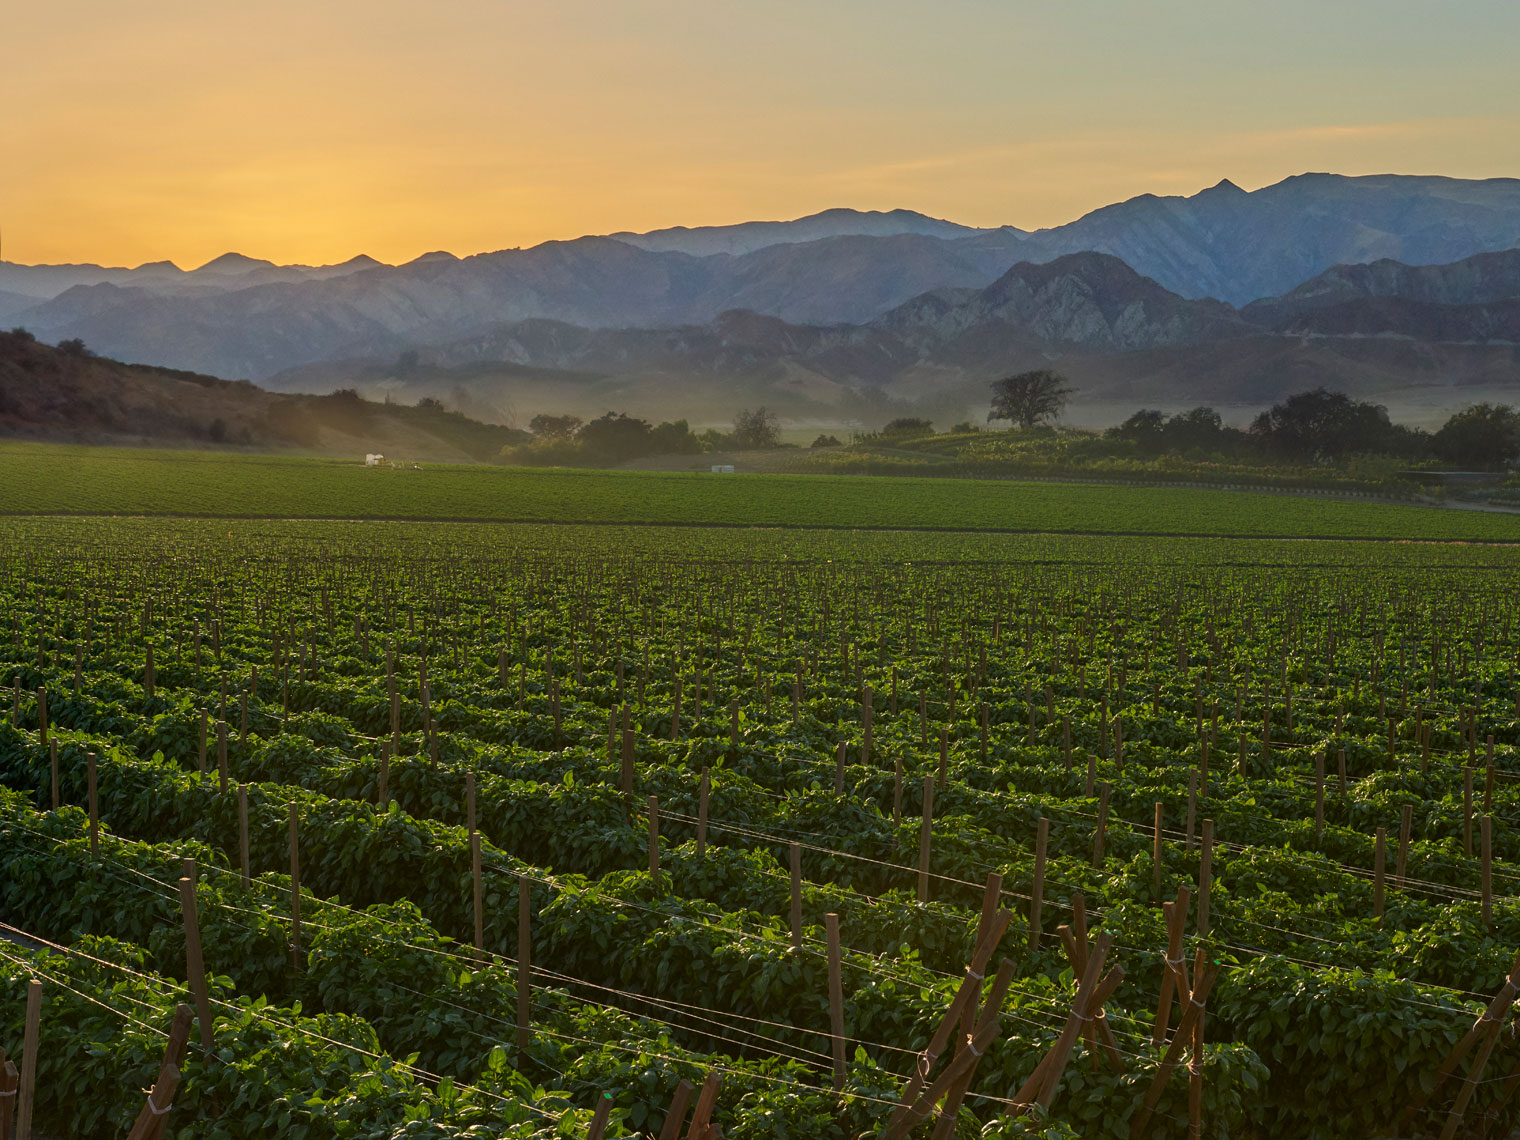 California-bell-pepper-farm-at-sunset-by-farm-photographer-Joe-Atlas.